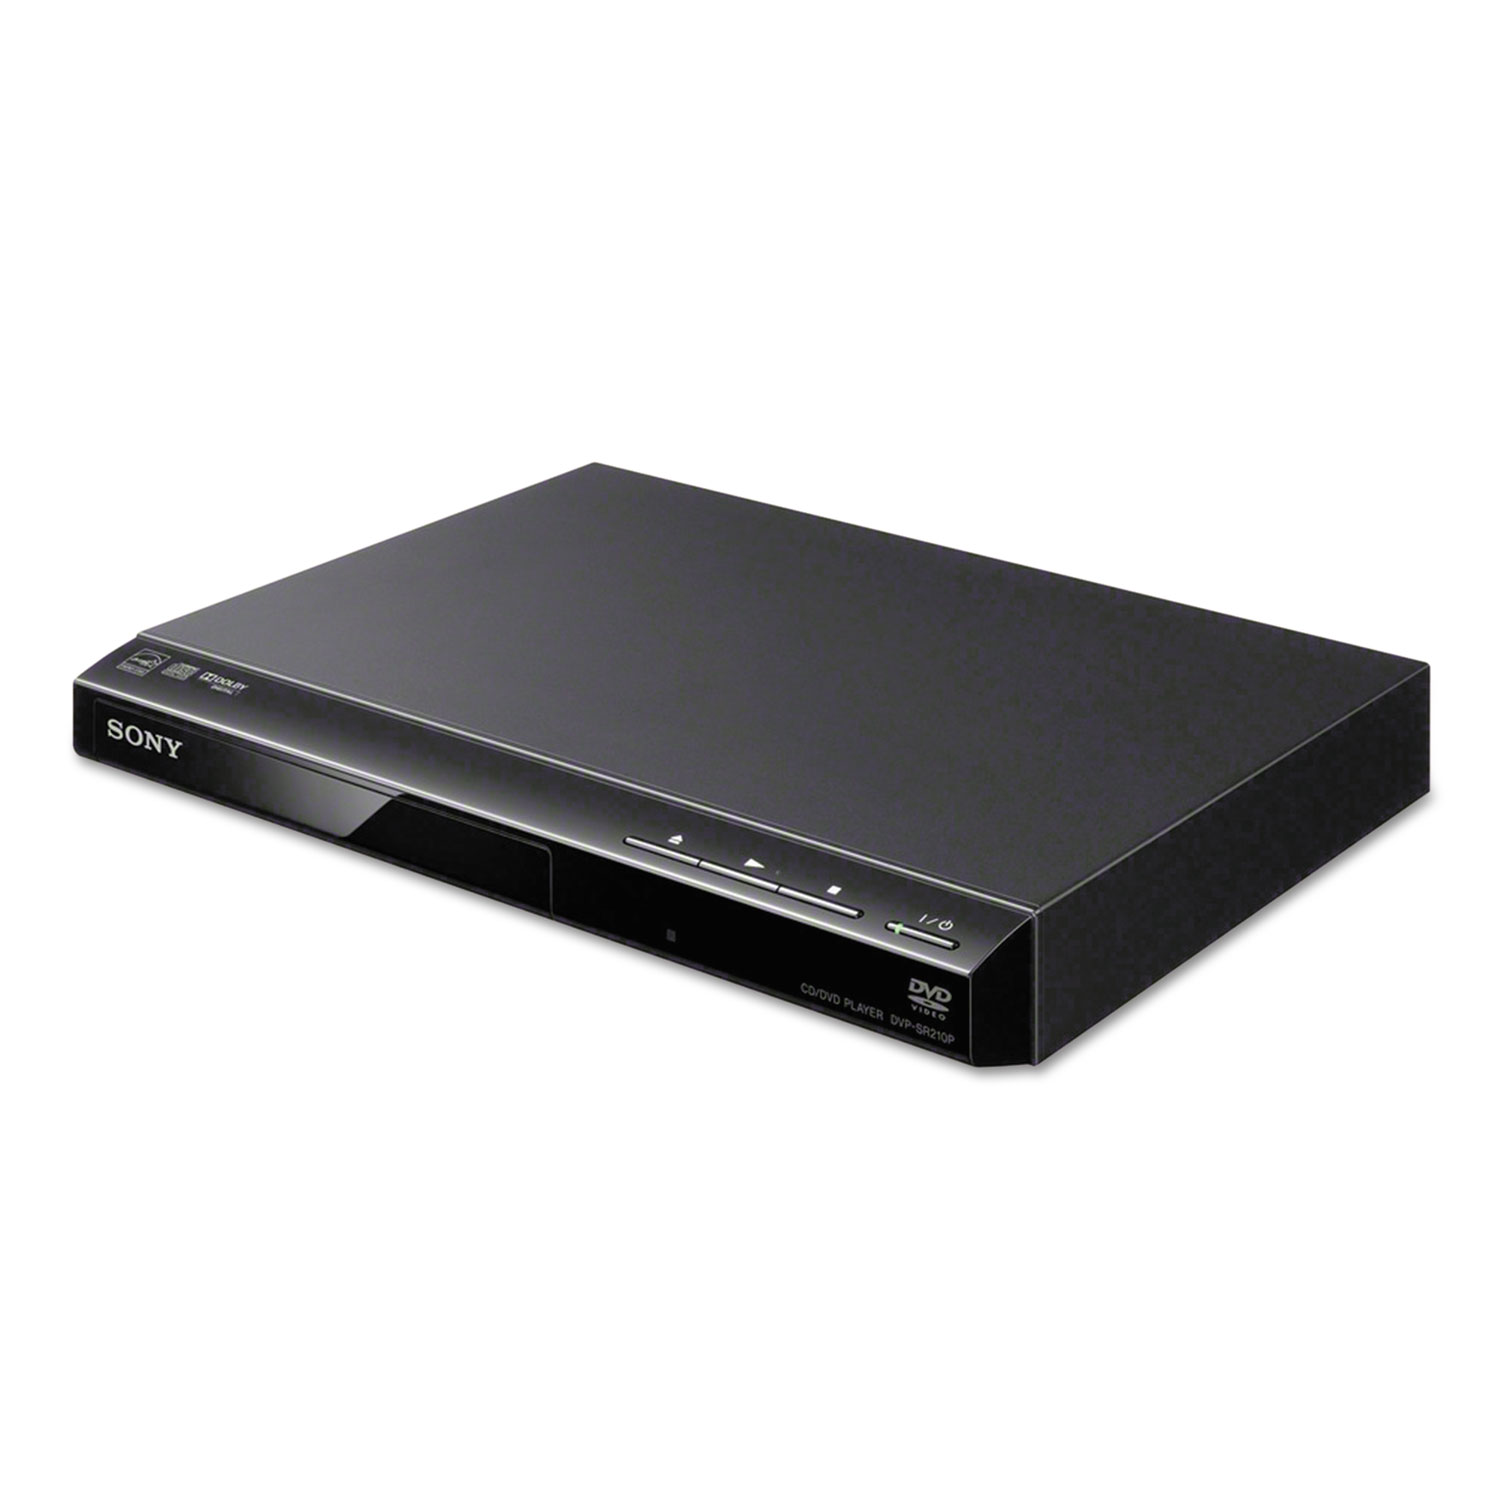 DVPSR210PB DVD Player